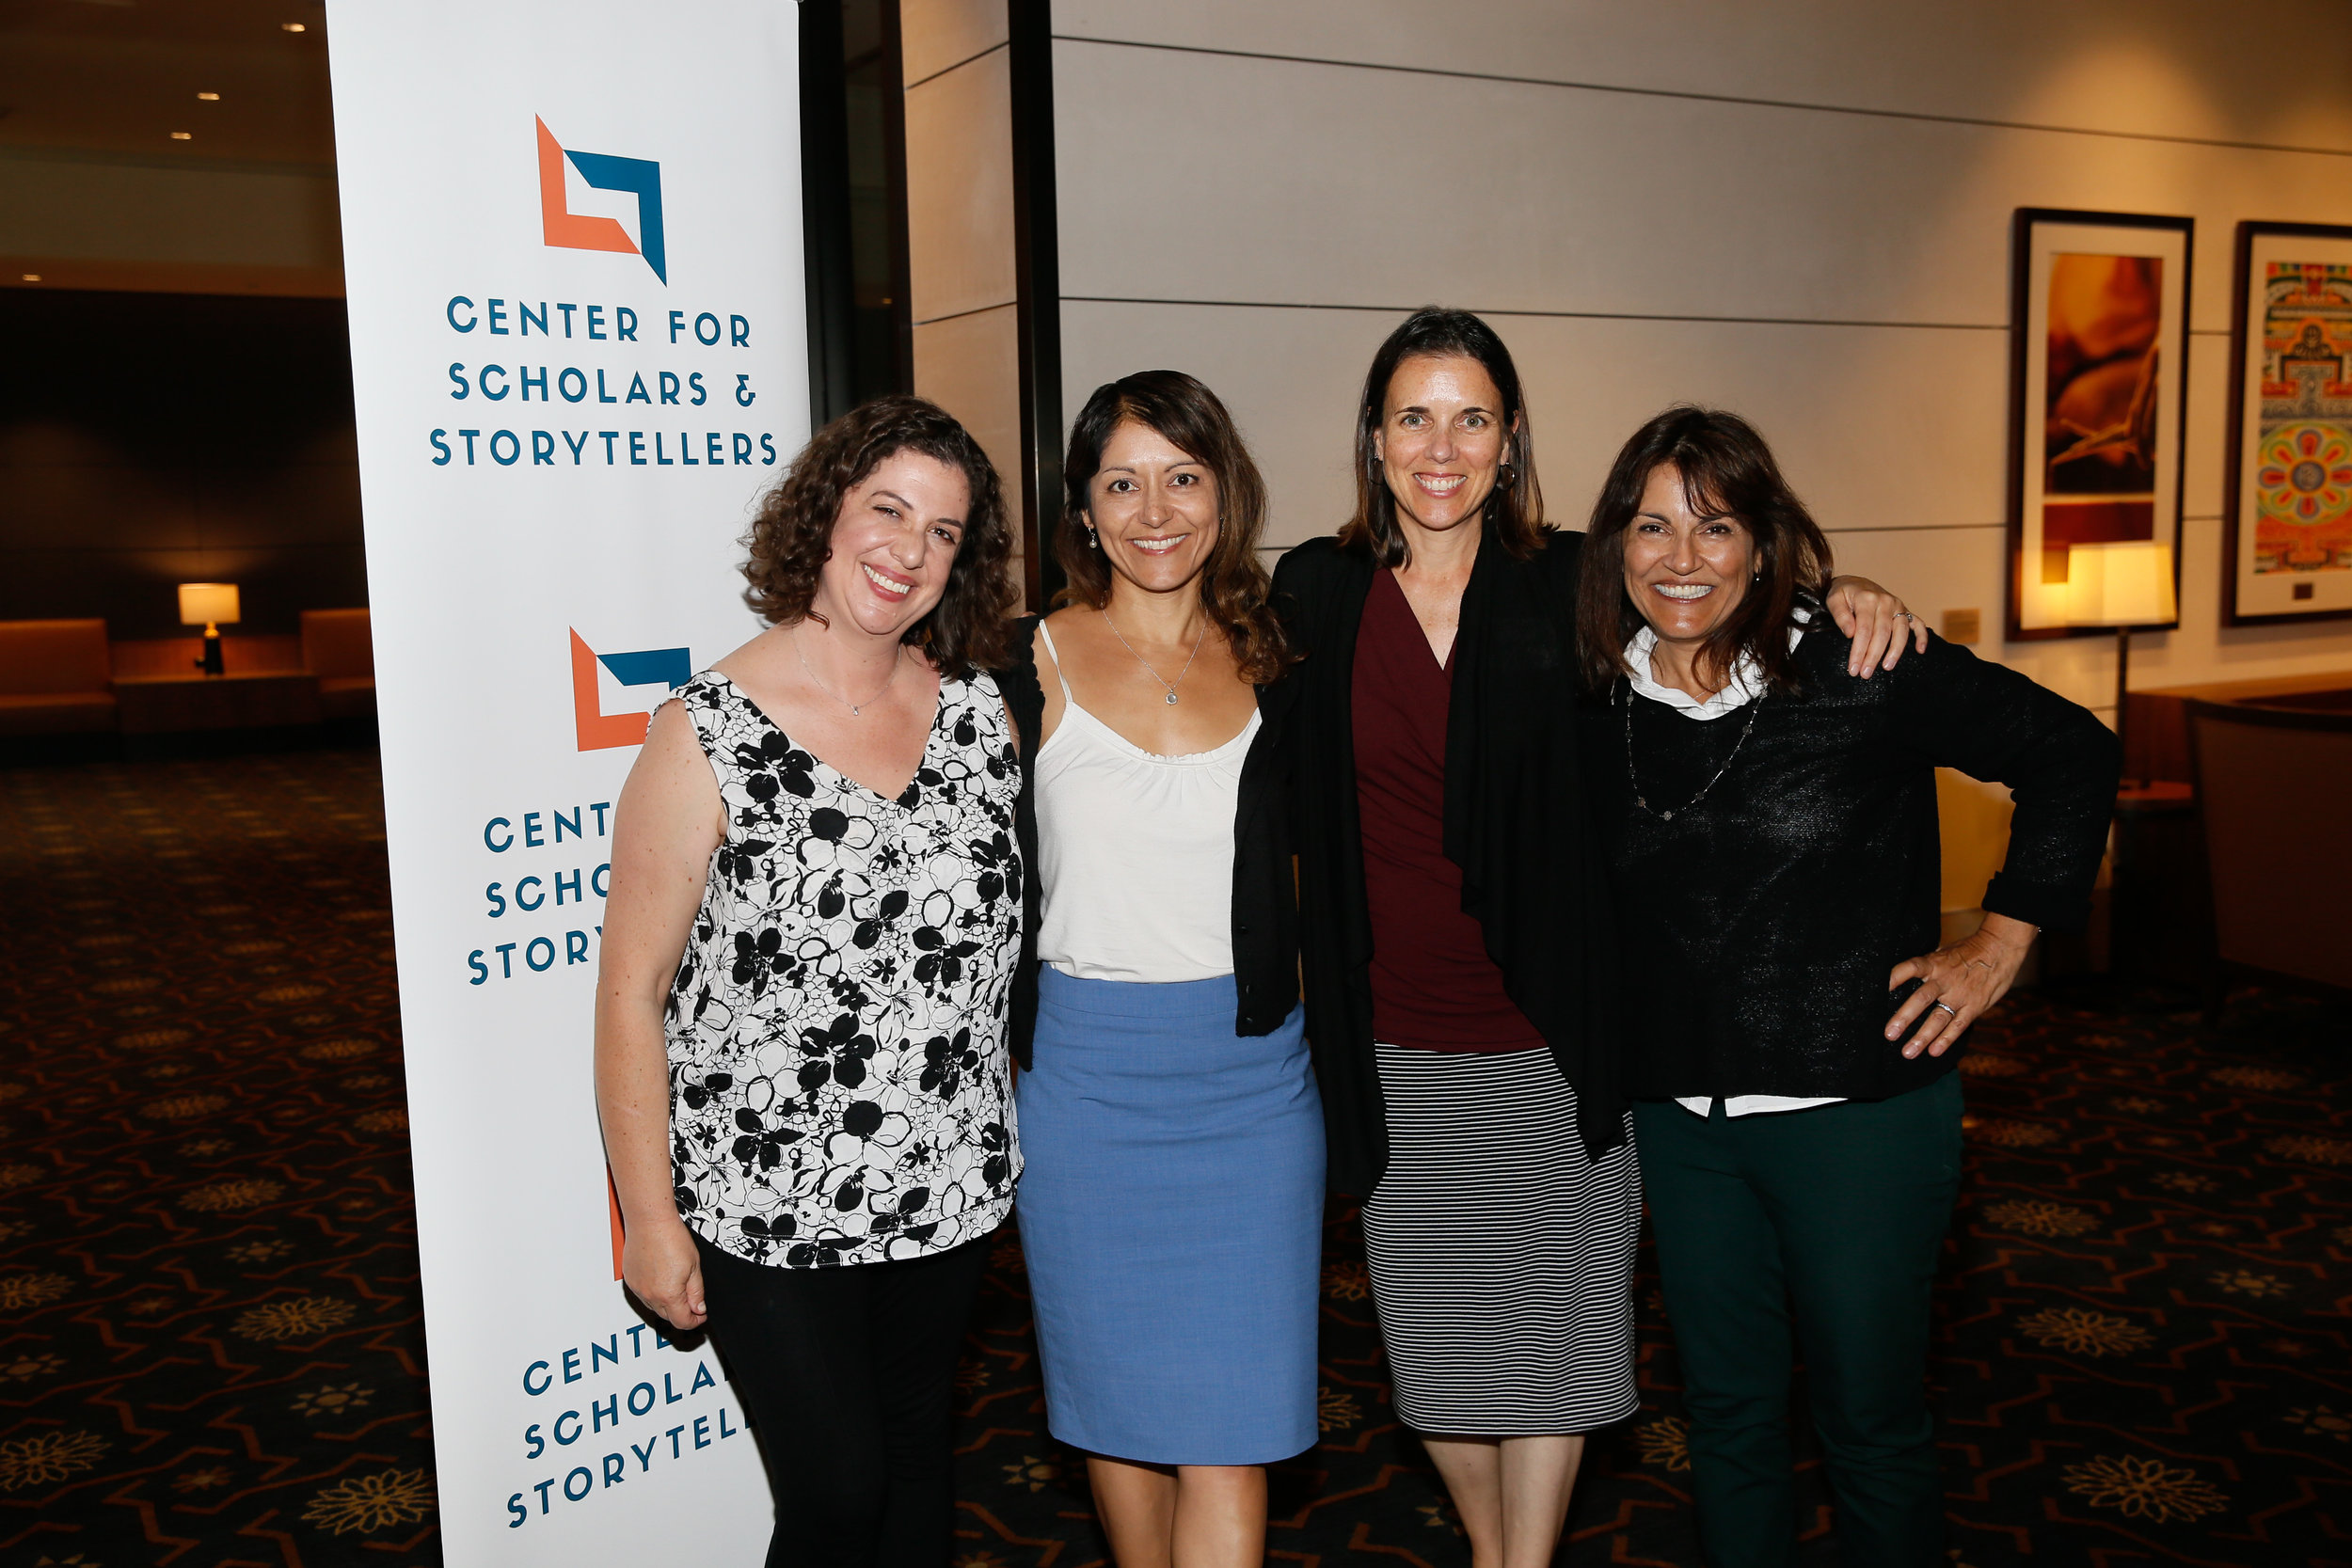 (from left to right) USC lecturer in communication Laurel Felt, UCSB Associate Professor Maryam Kia-Keating, Manager of the Center for Youth Mental Health and of Community Partnerships at Stanford Department of Psychiatry and Behavioral Sciences Vicki Harrison, and CSS Founder and Executive Director Dr. Yalda T. Uhls.